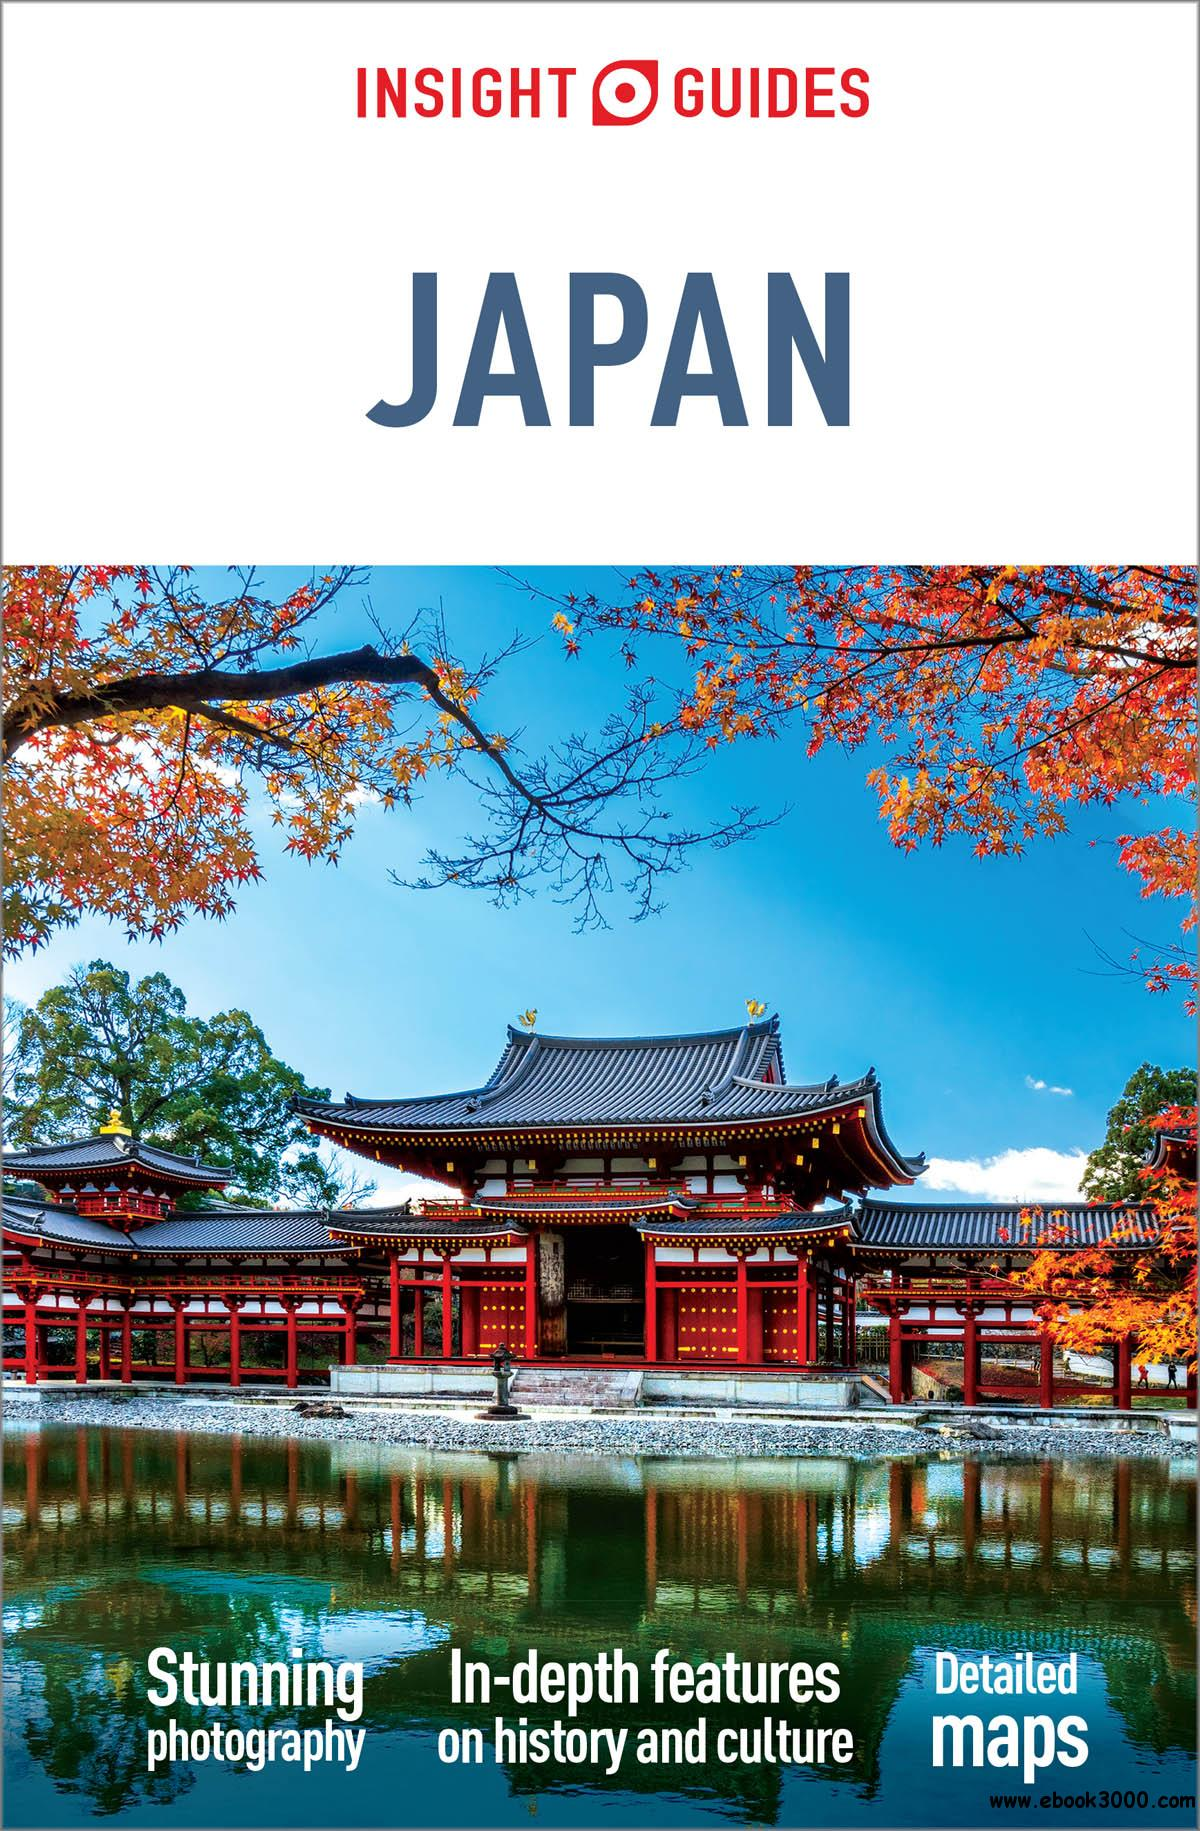 Insight Guides Japan - Japan Travel Guide, 6th Edition